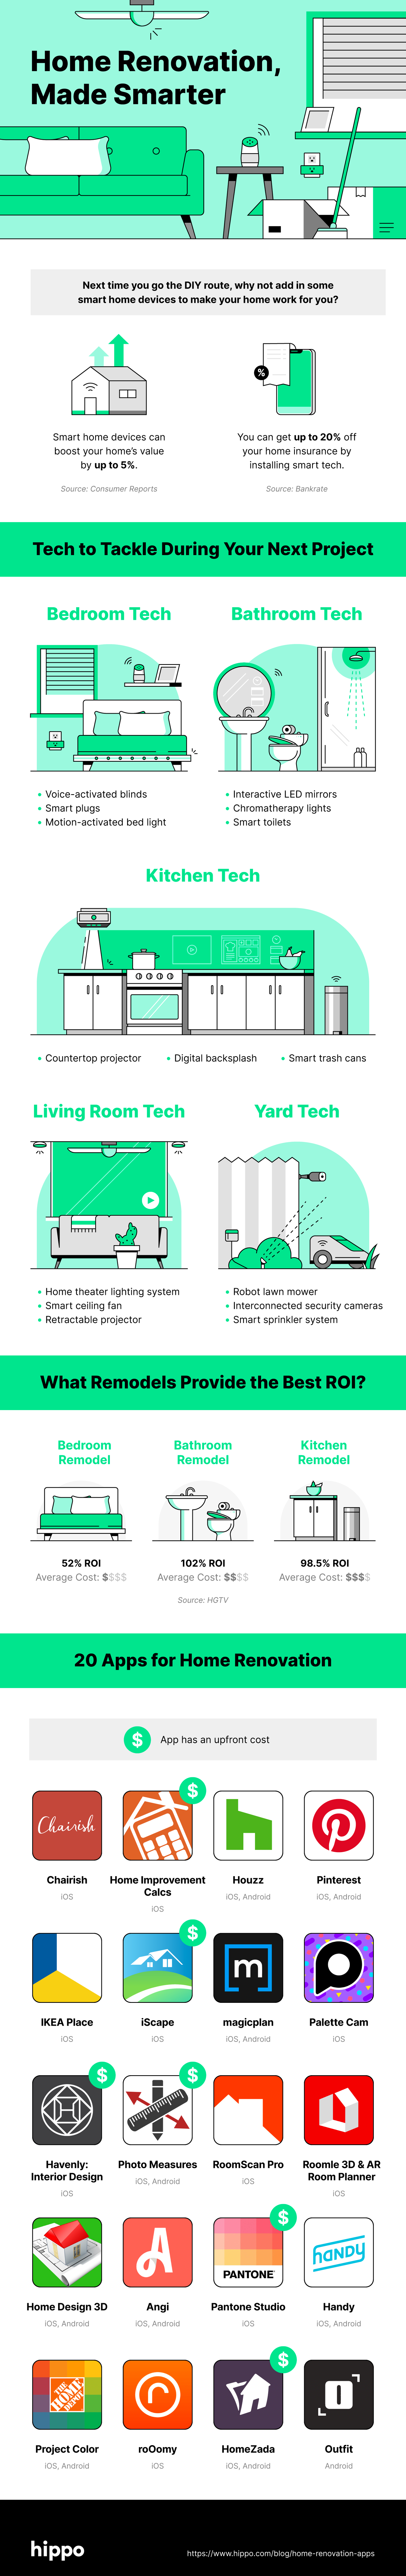 home renovation apps